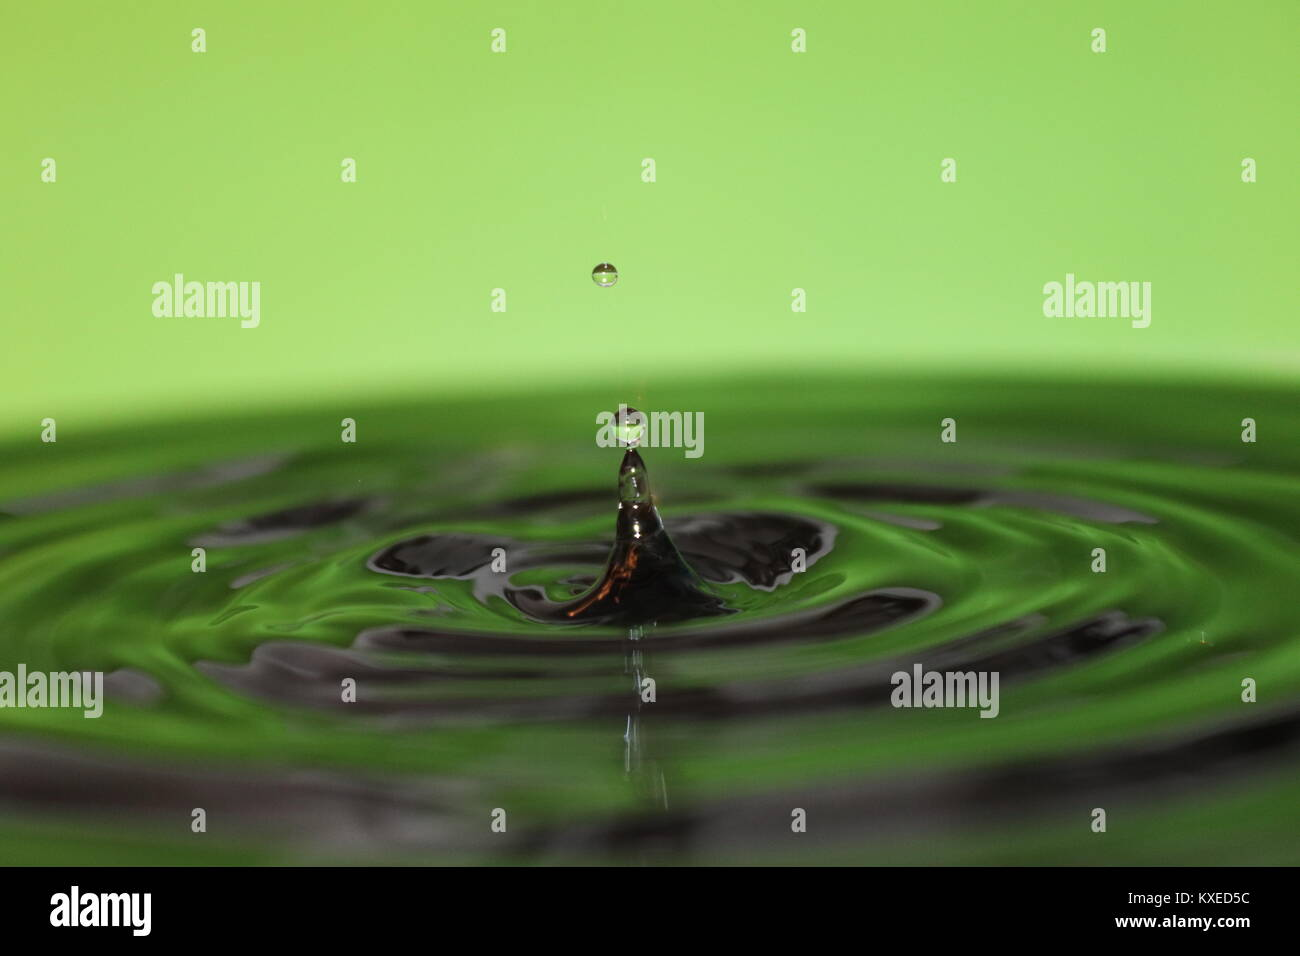 Water droplets photography drip drop shimmer pools of water reflecting light creating macro stunning images Stock Photo